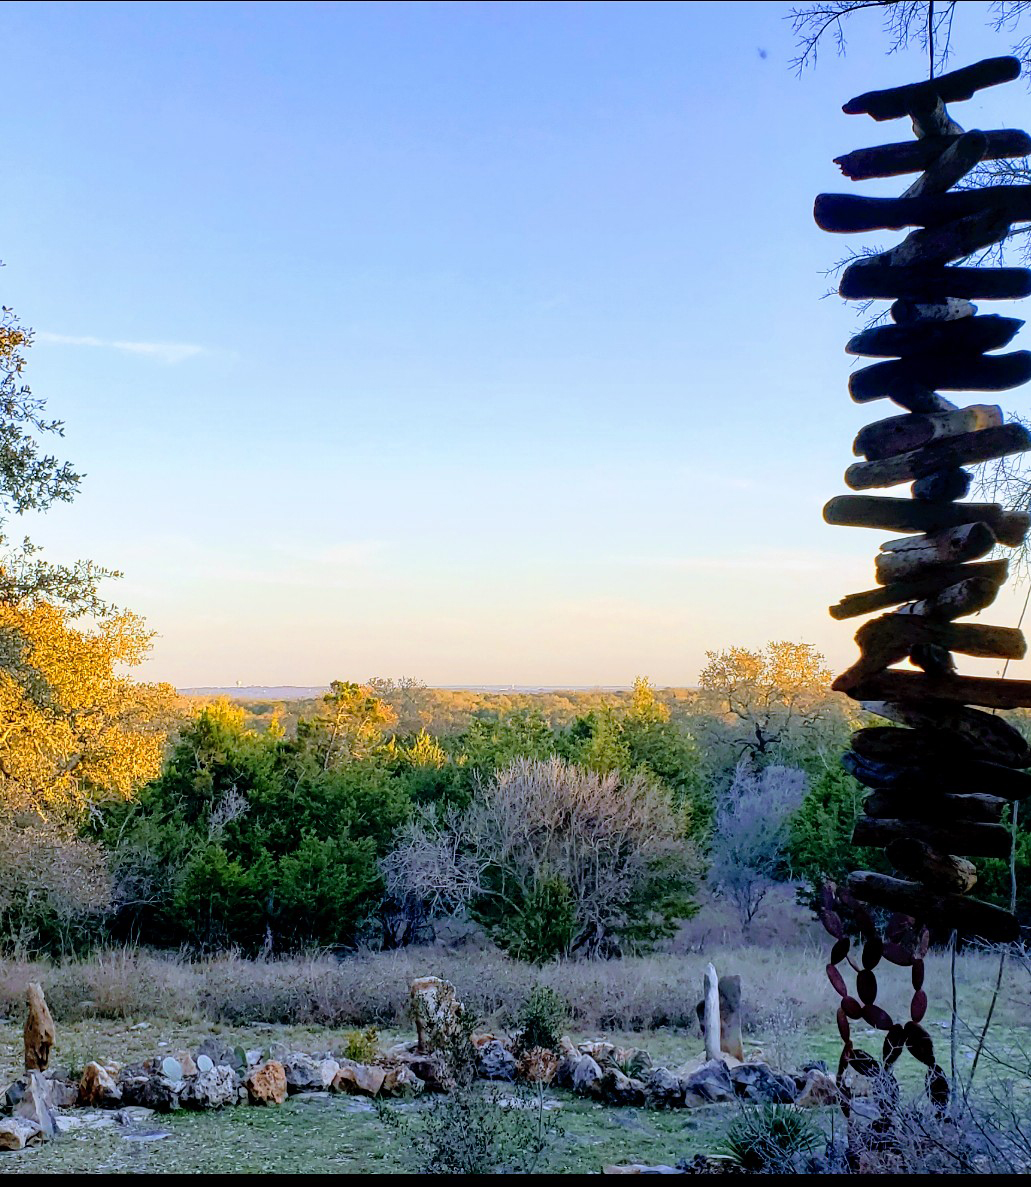 The view over the Hill Country from Craig Taylor's back porch.